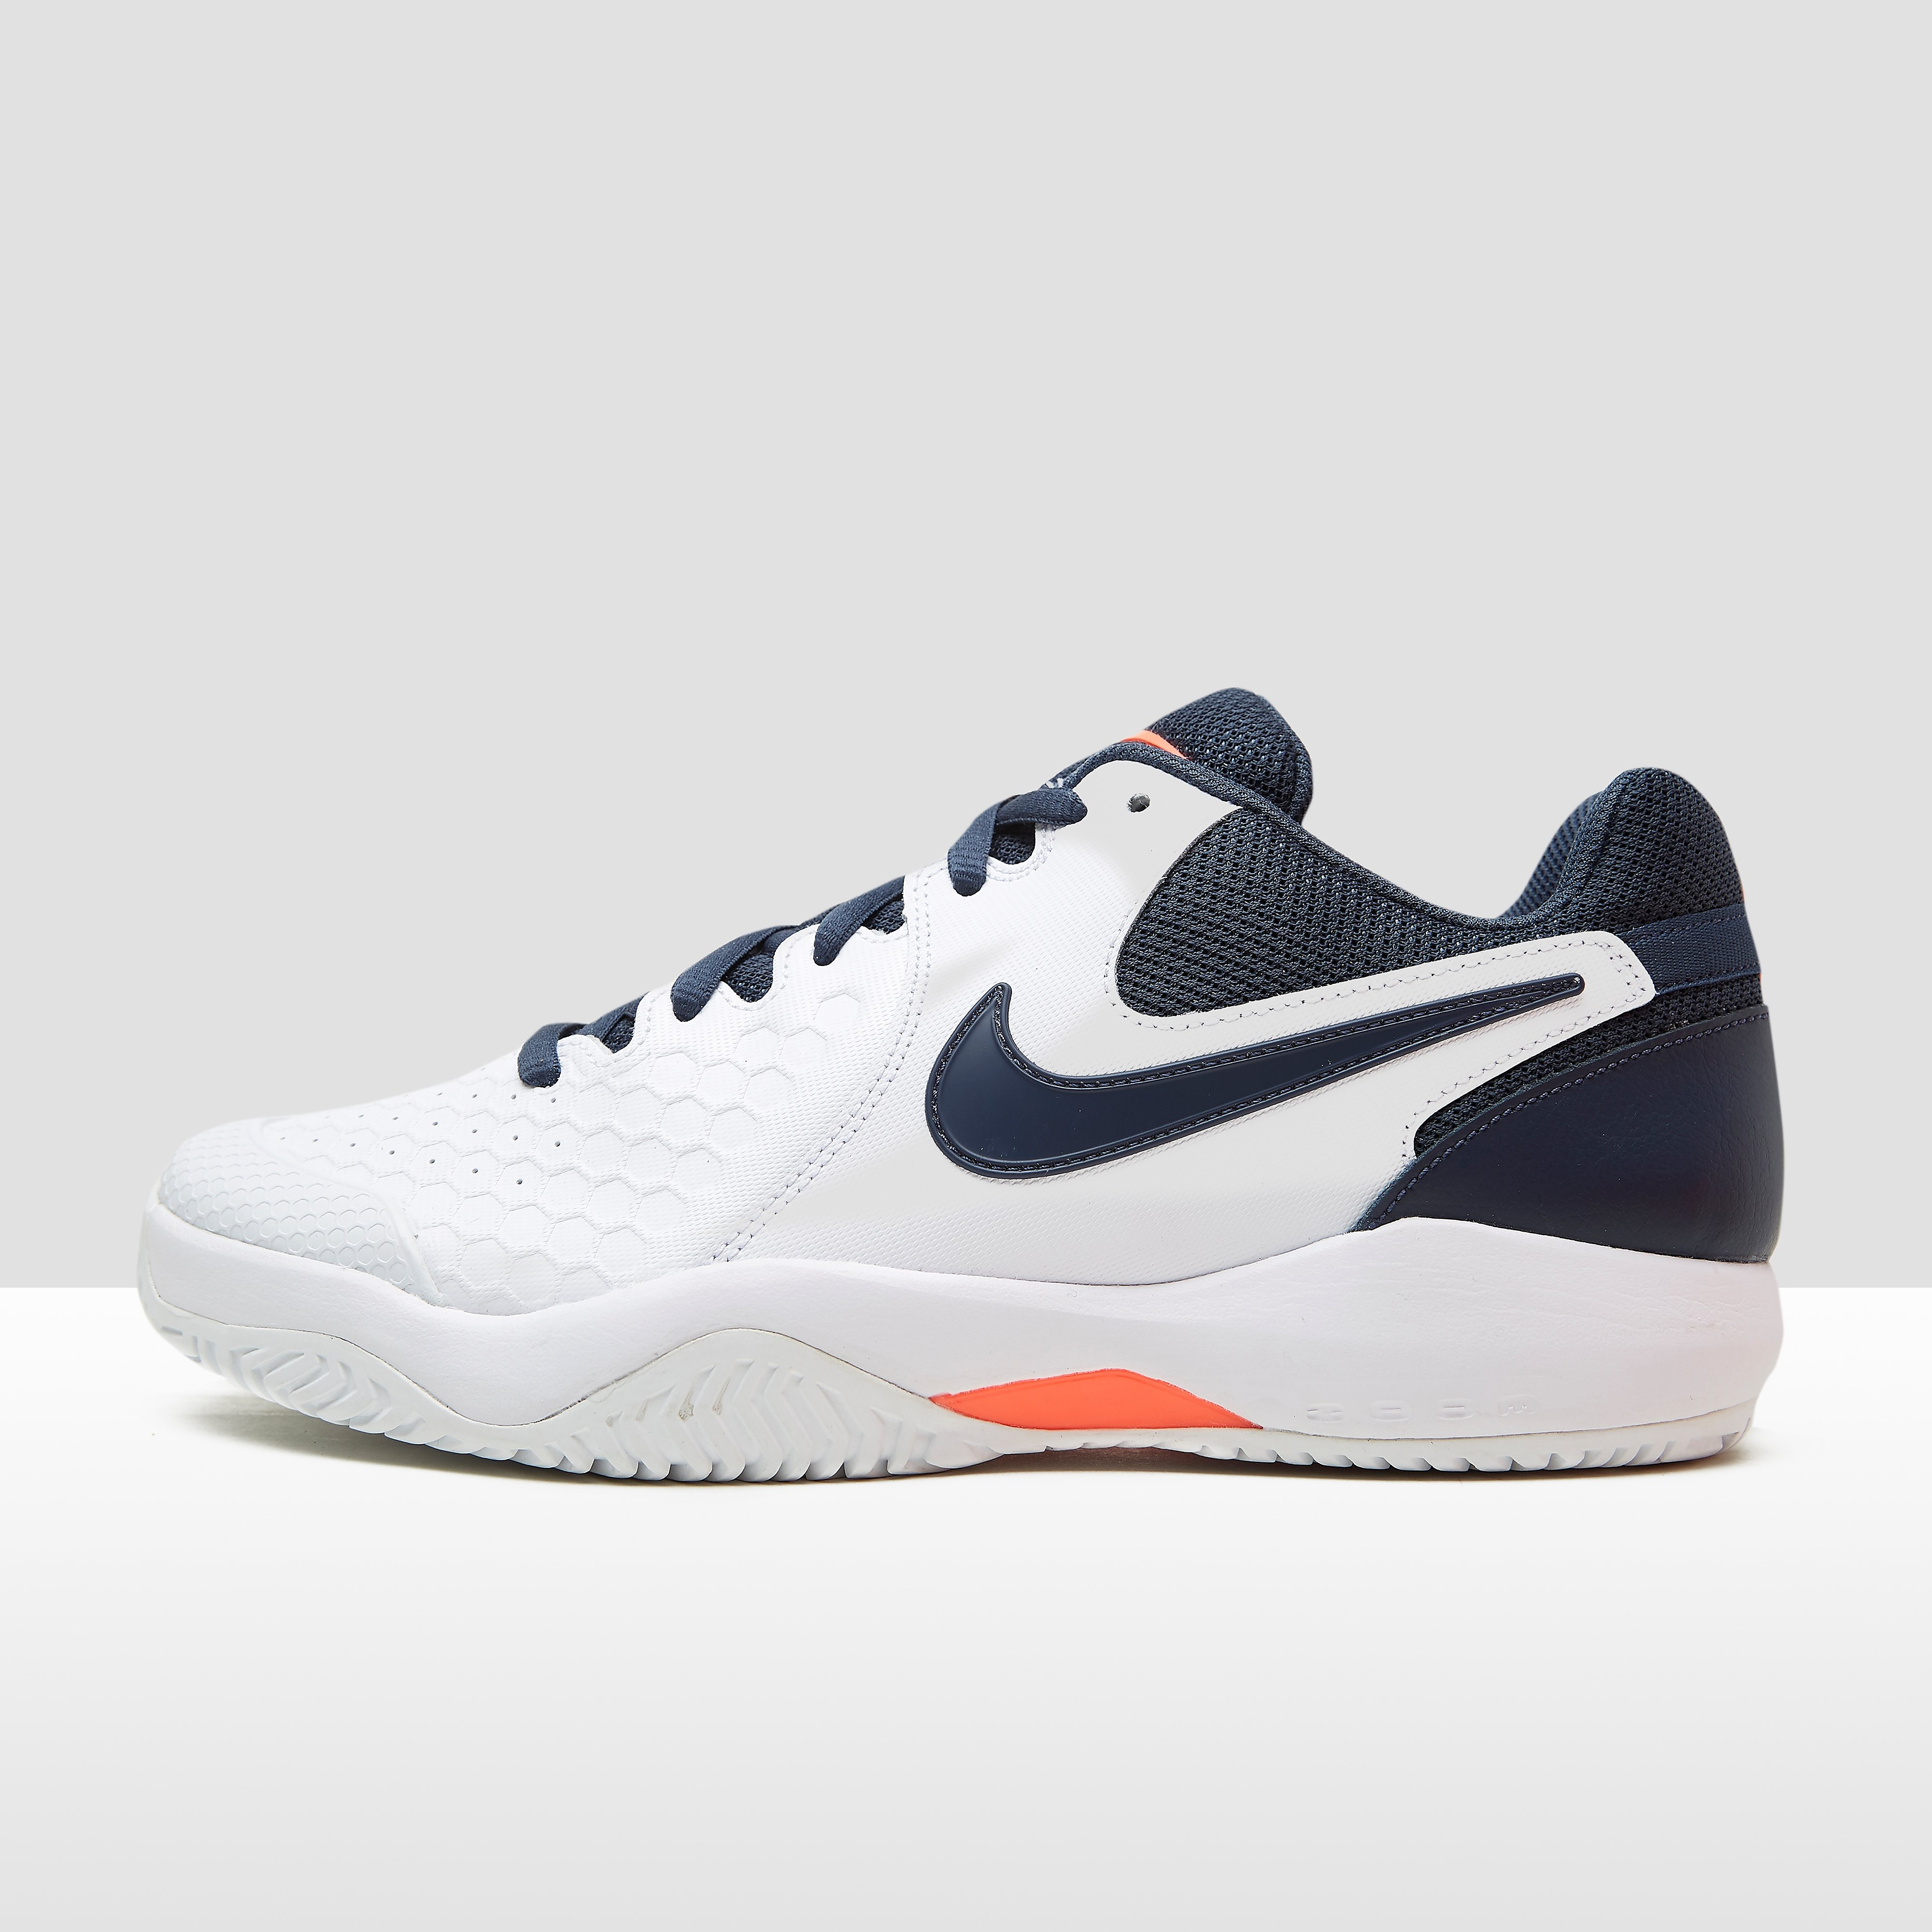 NIKE AIR ZOOM RESISTANCE TENNISSCHOENEN WIT HEREN